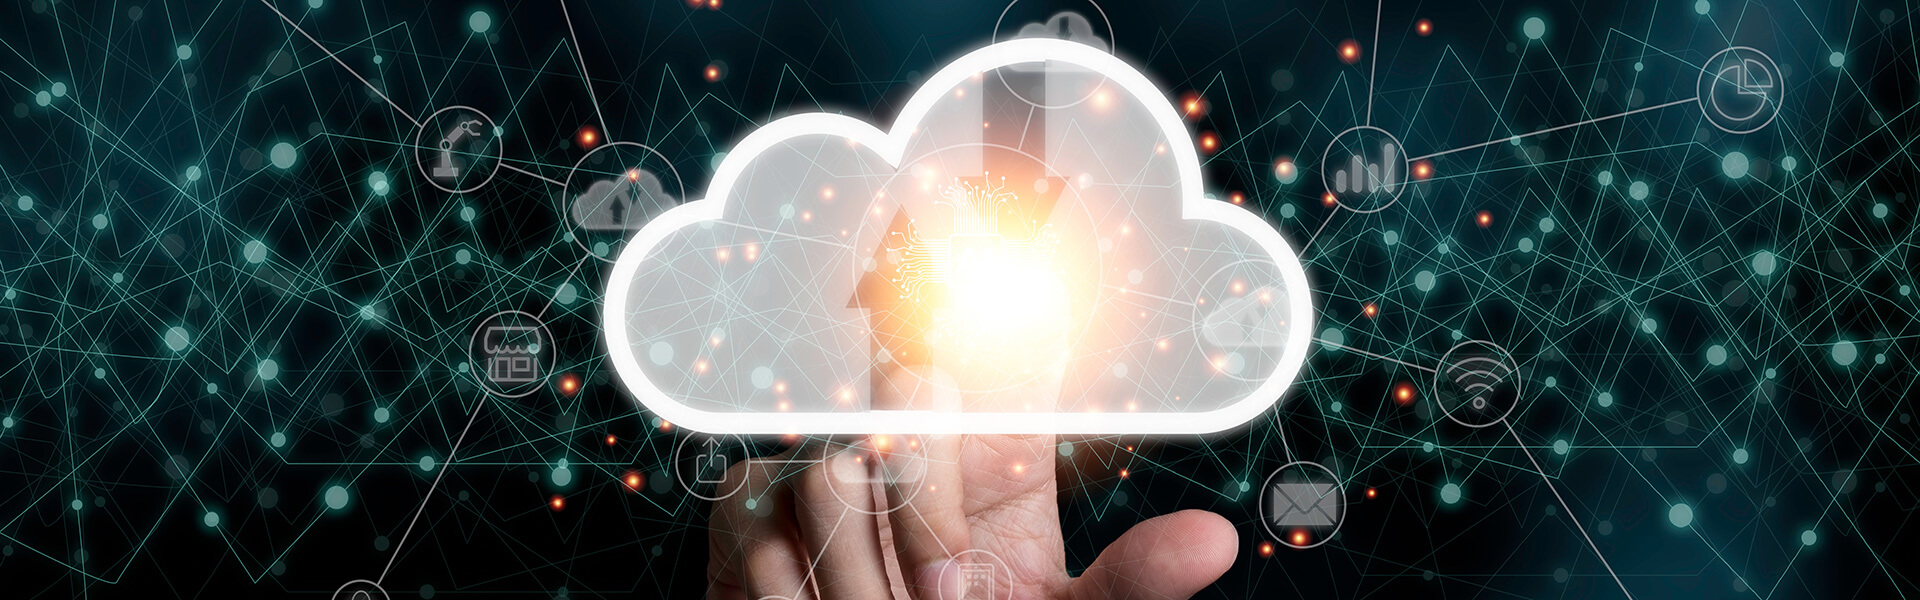 Get Amaze<sup>®</sup>, Accelerate Cloud Migration with up to 50% TCO Reduction